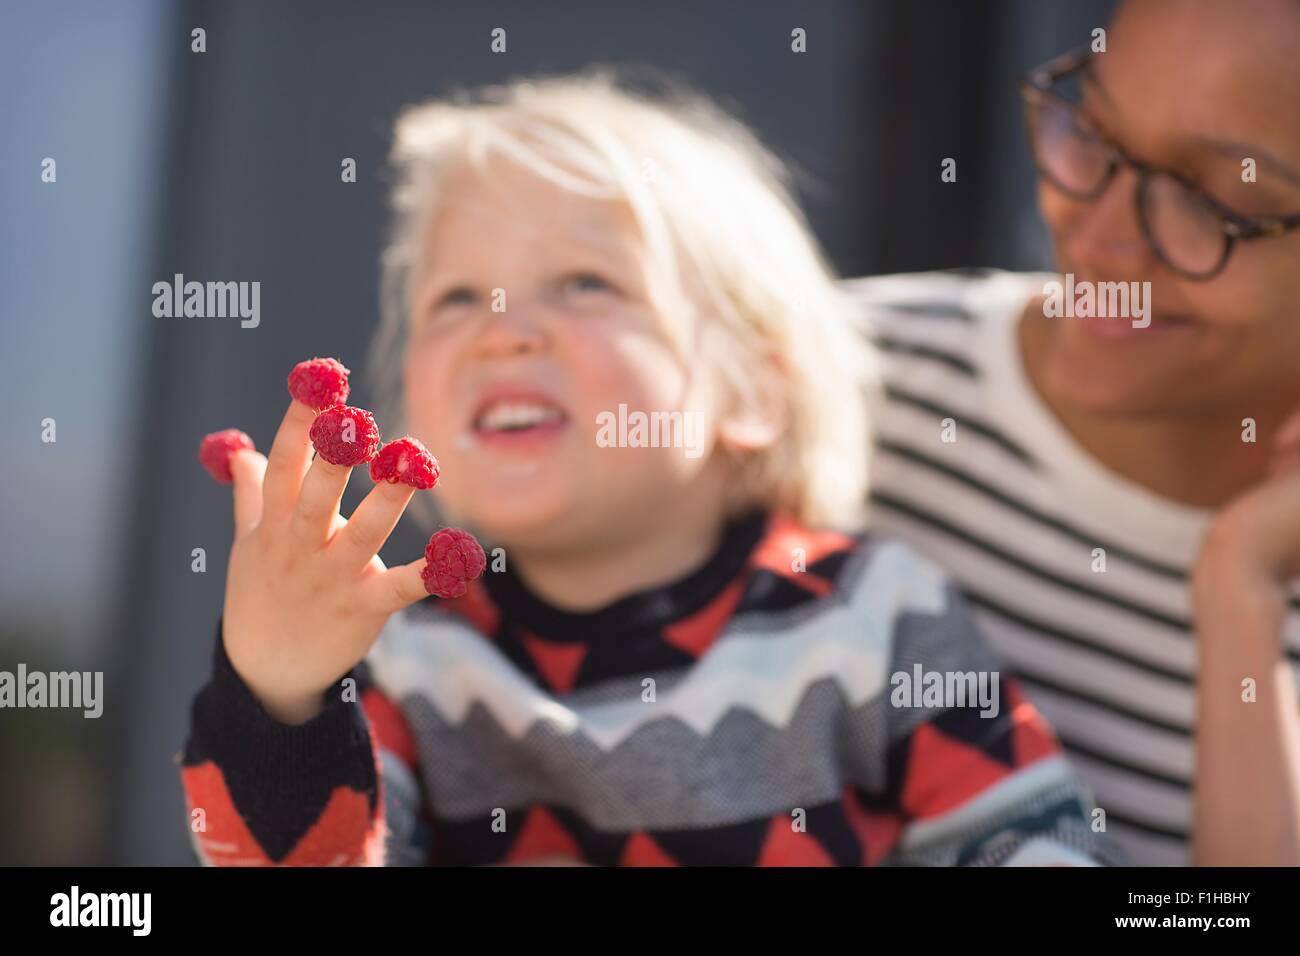 Boy with raspberries on fingers, mother watching - Stock Image